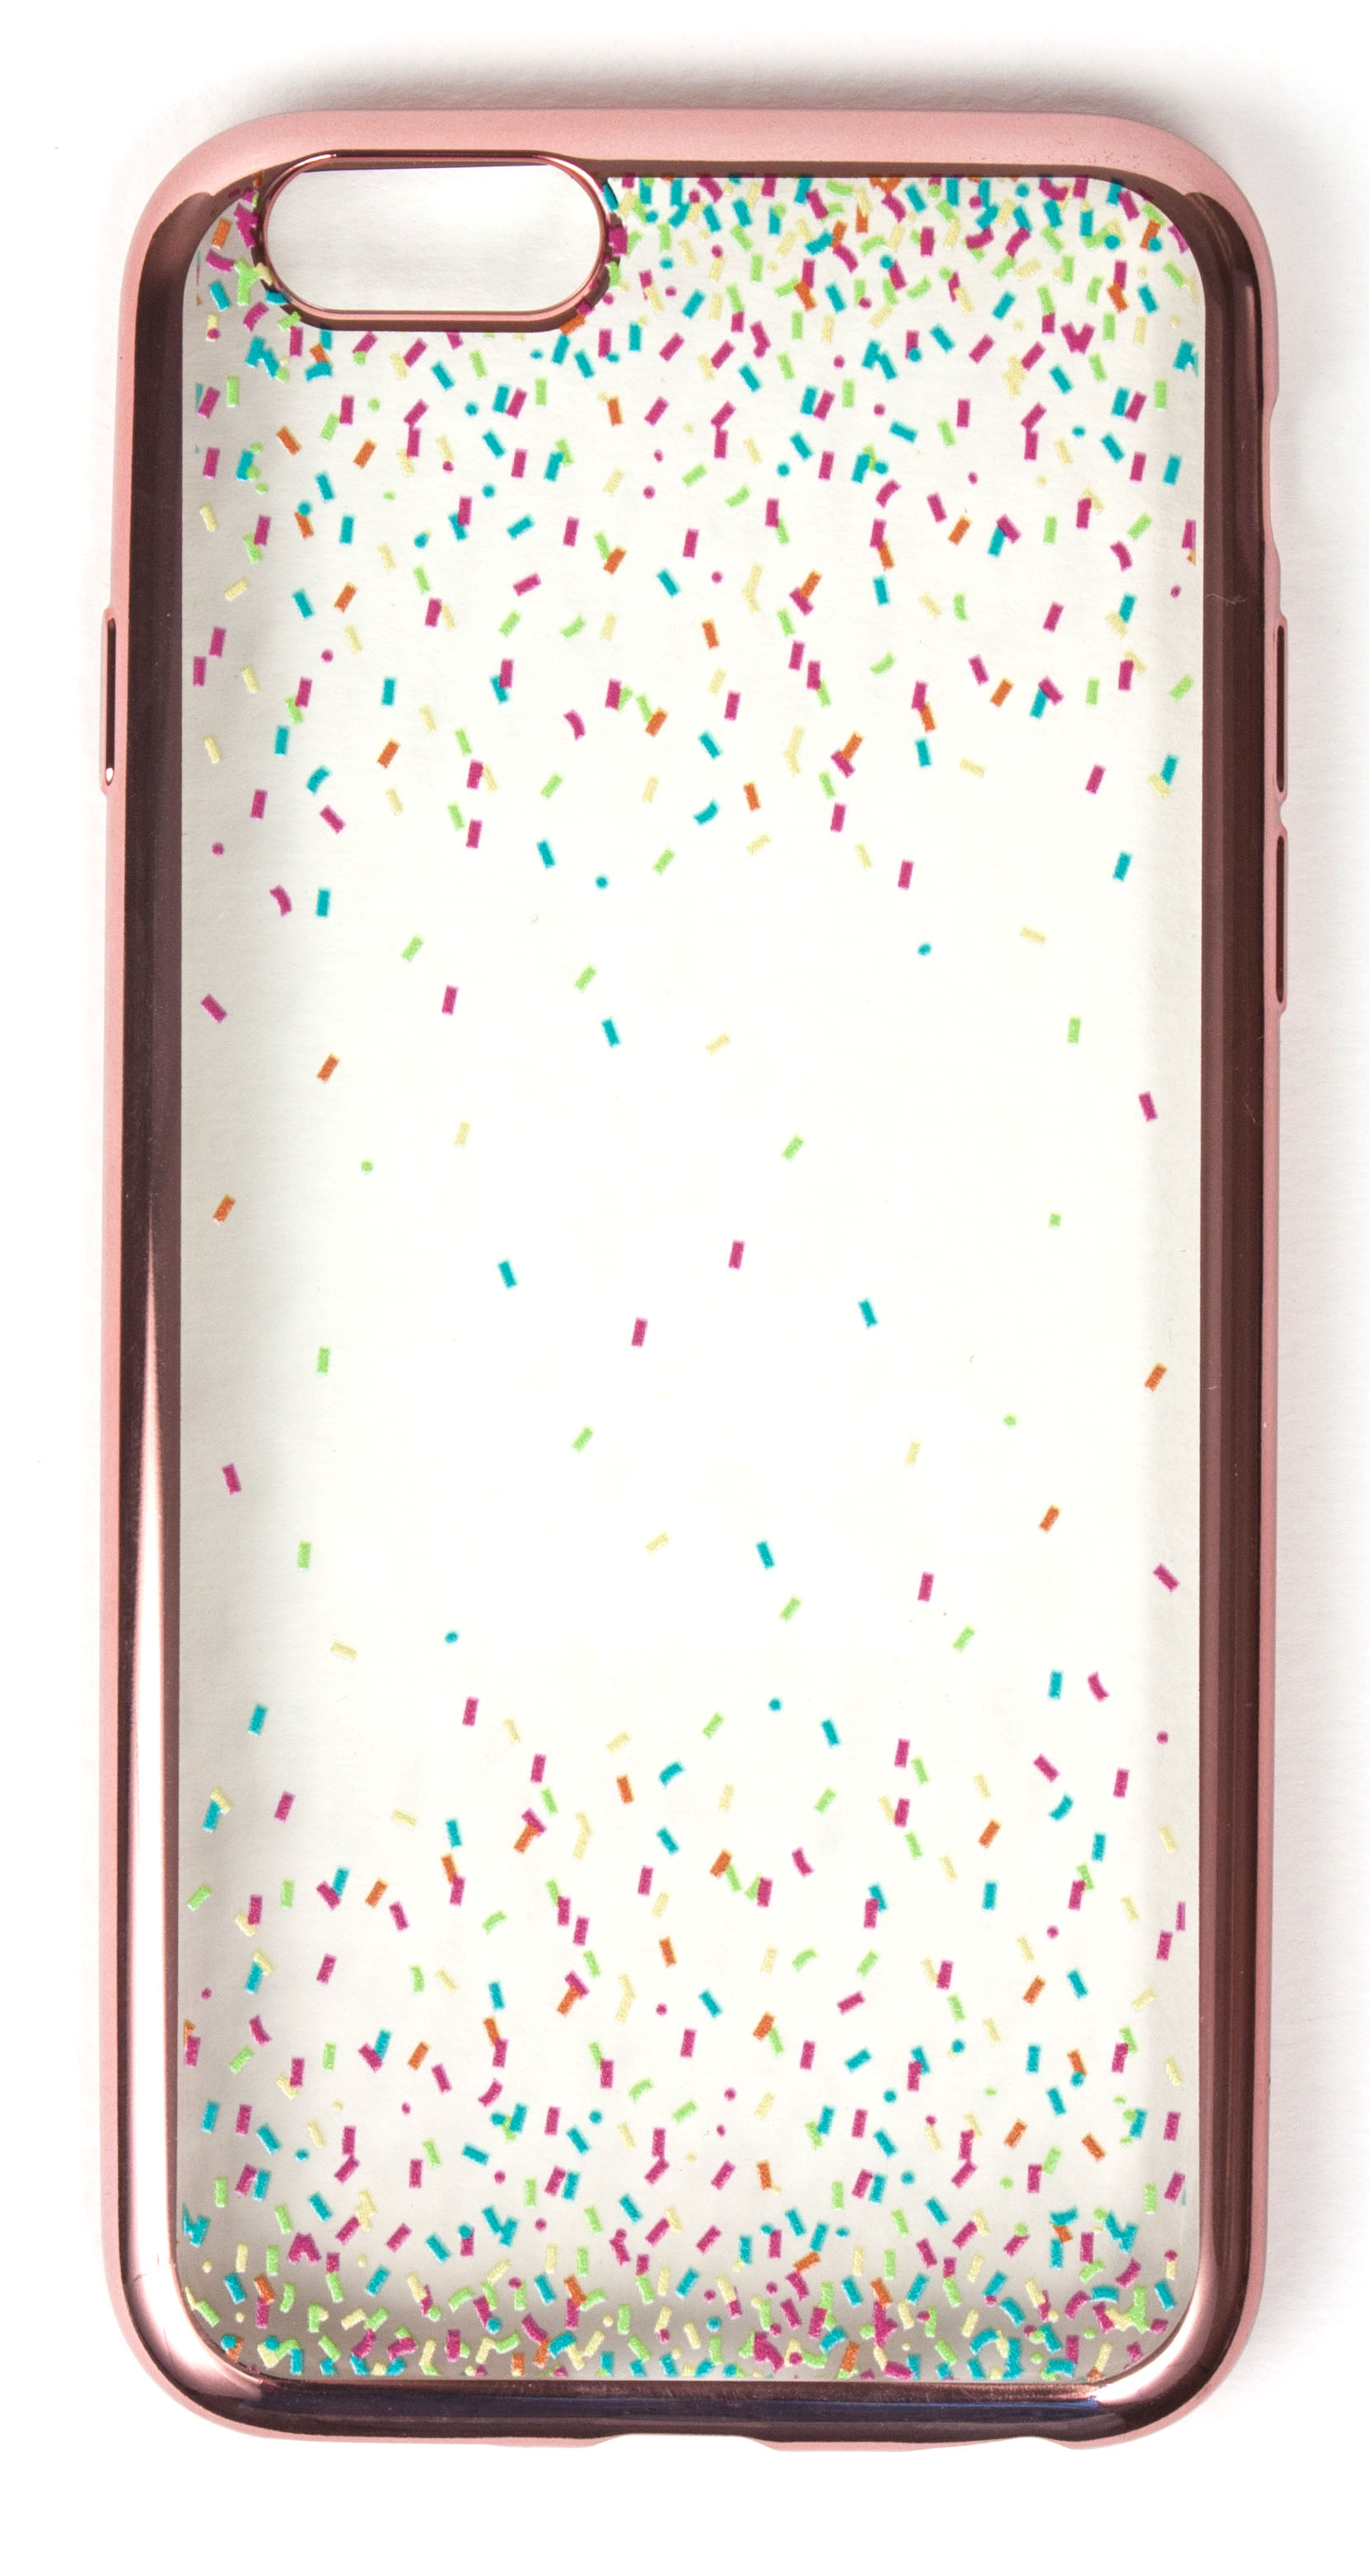 Samsung Galaxy S7 Case, YogaCase MetalEdge Silicone Back Protective Cover (Confetti Rose Gold)